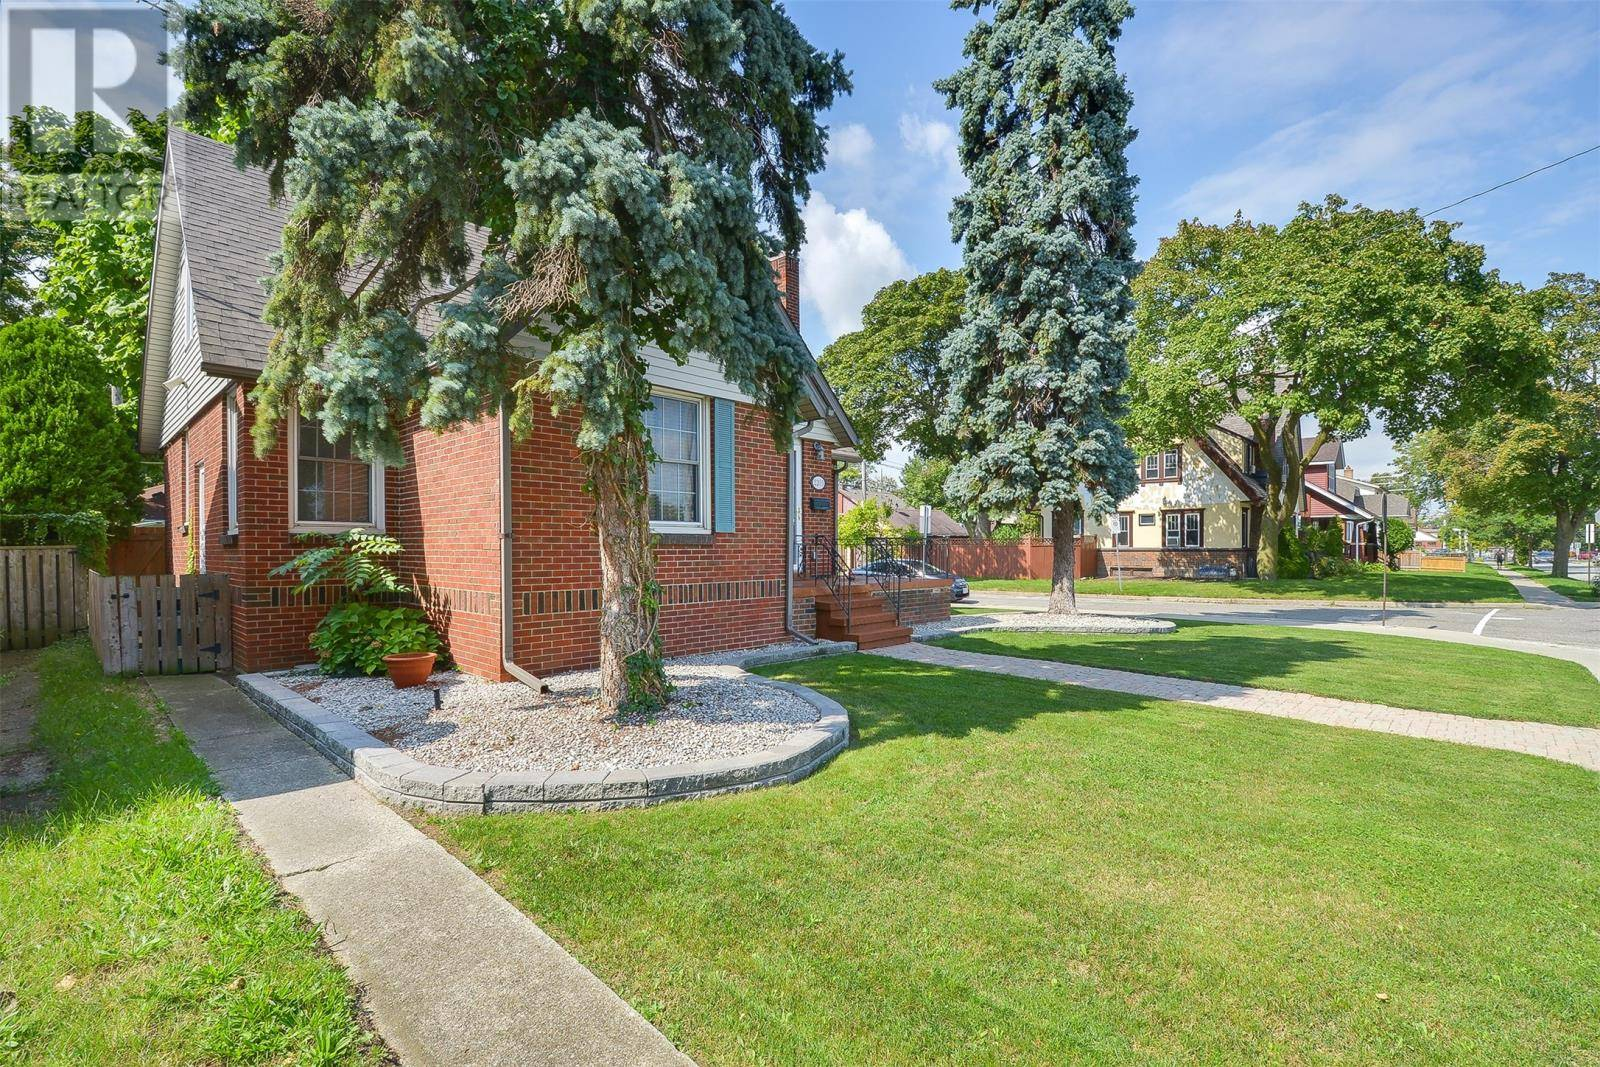 House for sale at 2203 Kildare  Windsor Ontario - MLS: 19025528